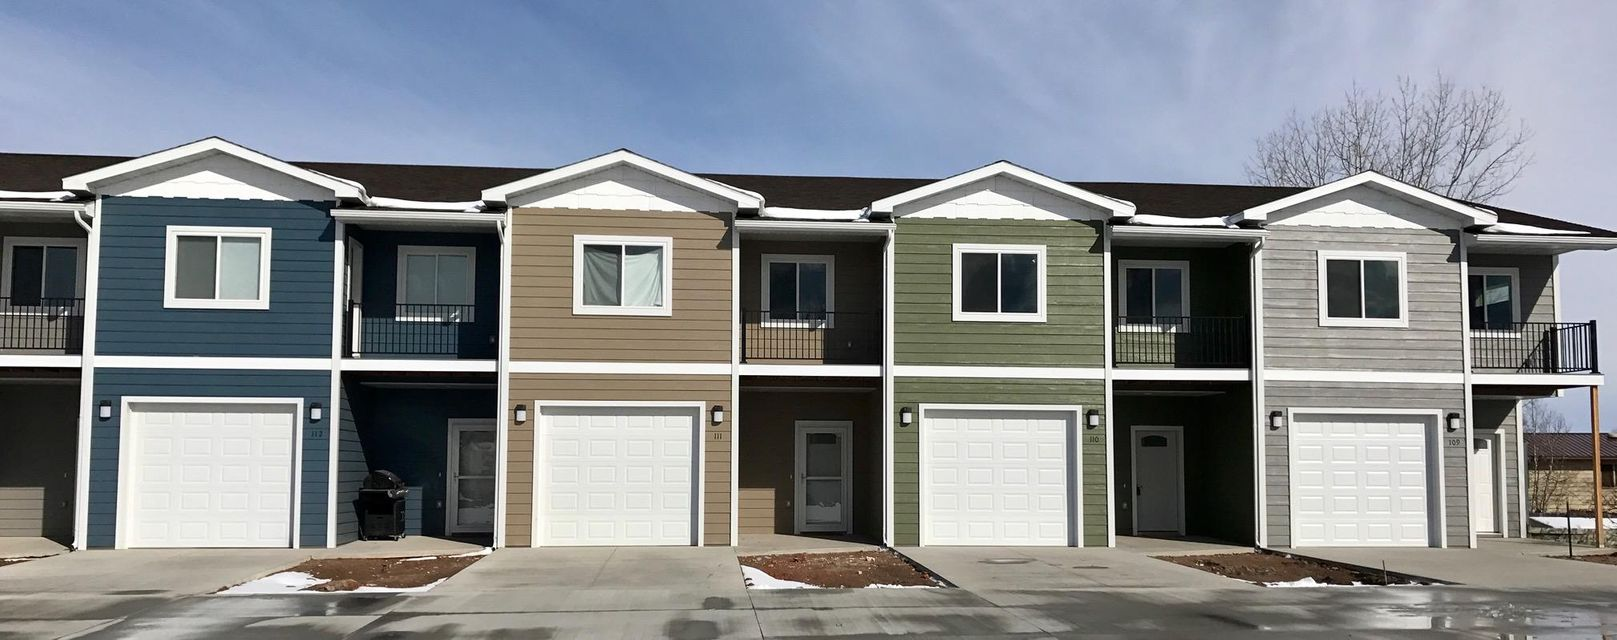 110 Trails West Circle, Ranchester, WY 82839